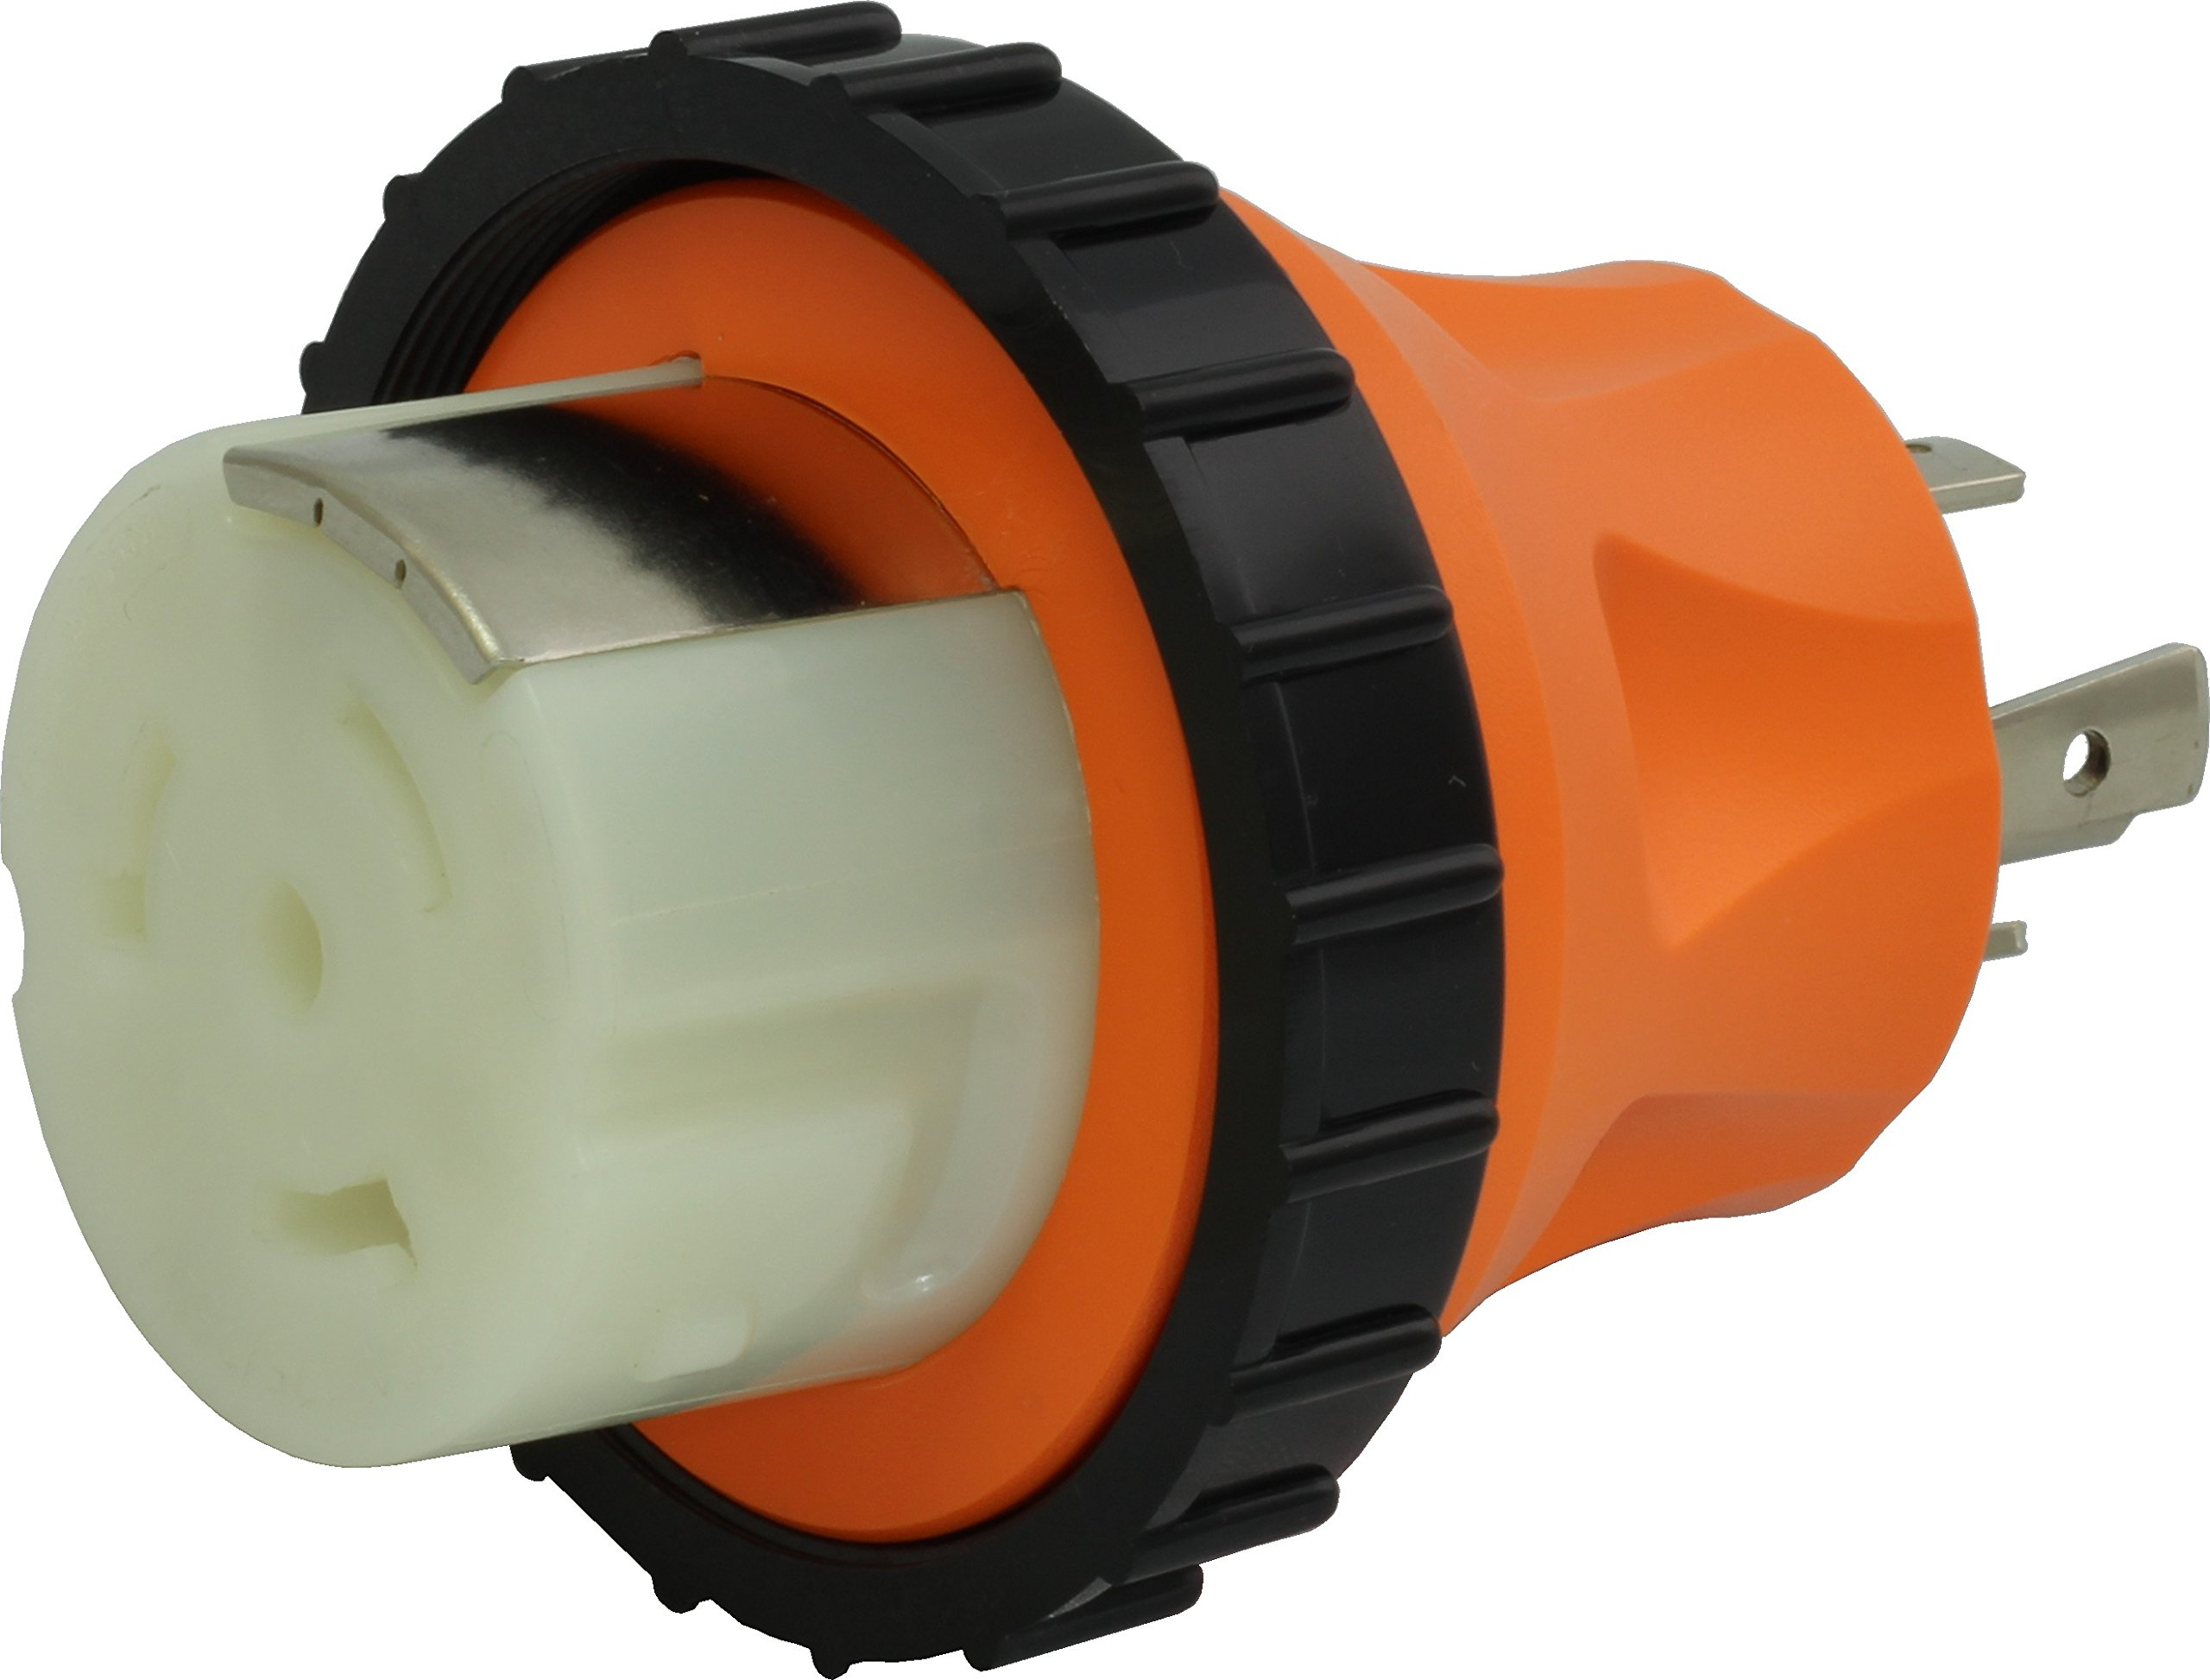 AC WORKS 50Amp RV Marine Detachable Adapter (L14-30P 30A 4-Prong Locking Plug-Compact)